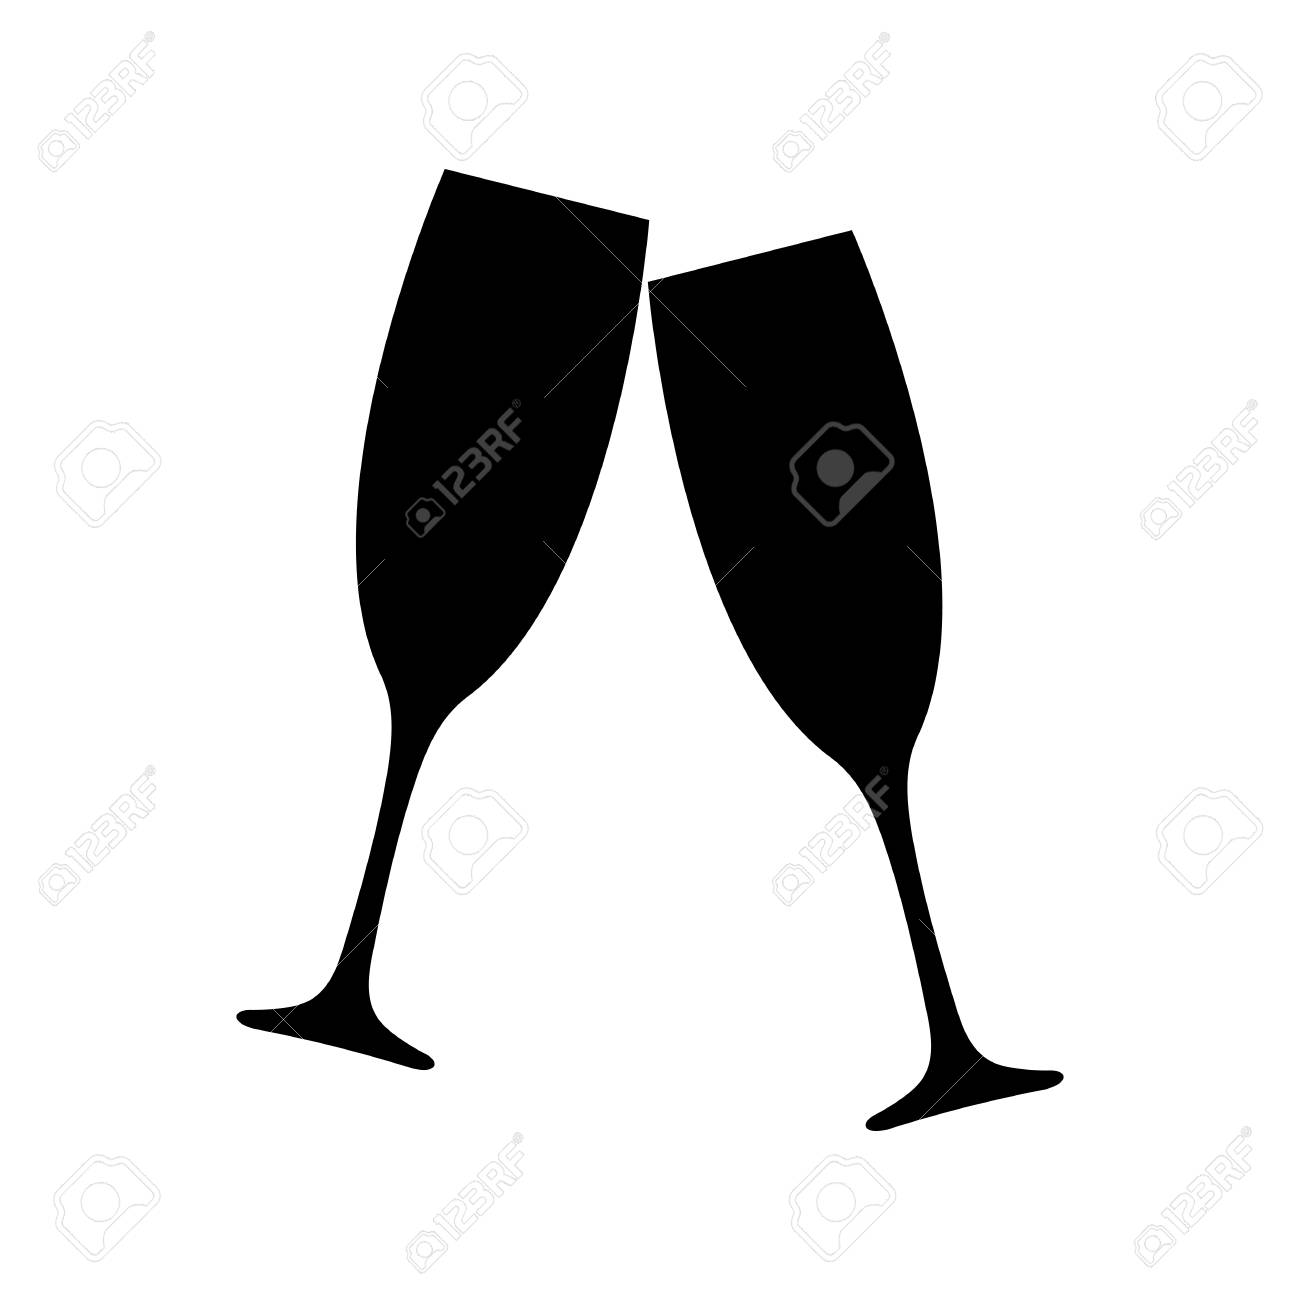 Clinking champagne glasses icon. Toasting with two glasses of...